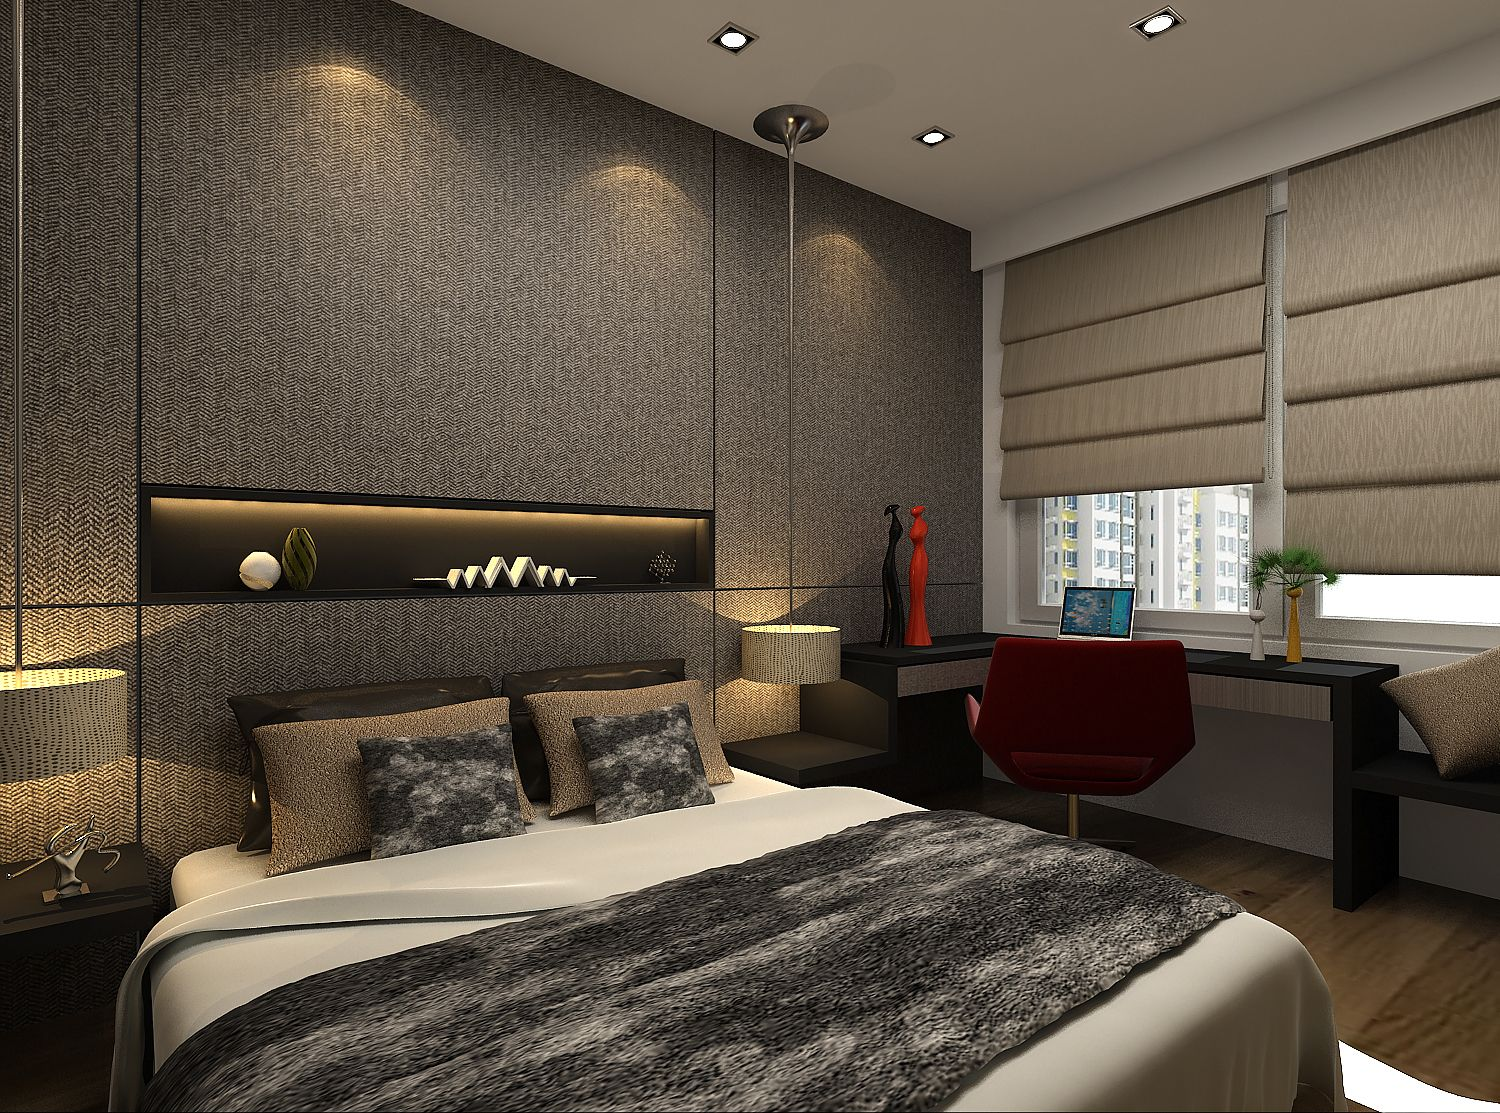 Singapore Condominium Master Bedroom Interior Design By Posh Urban